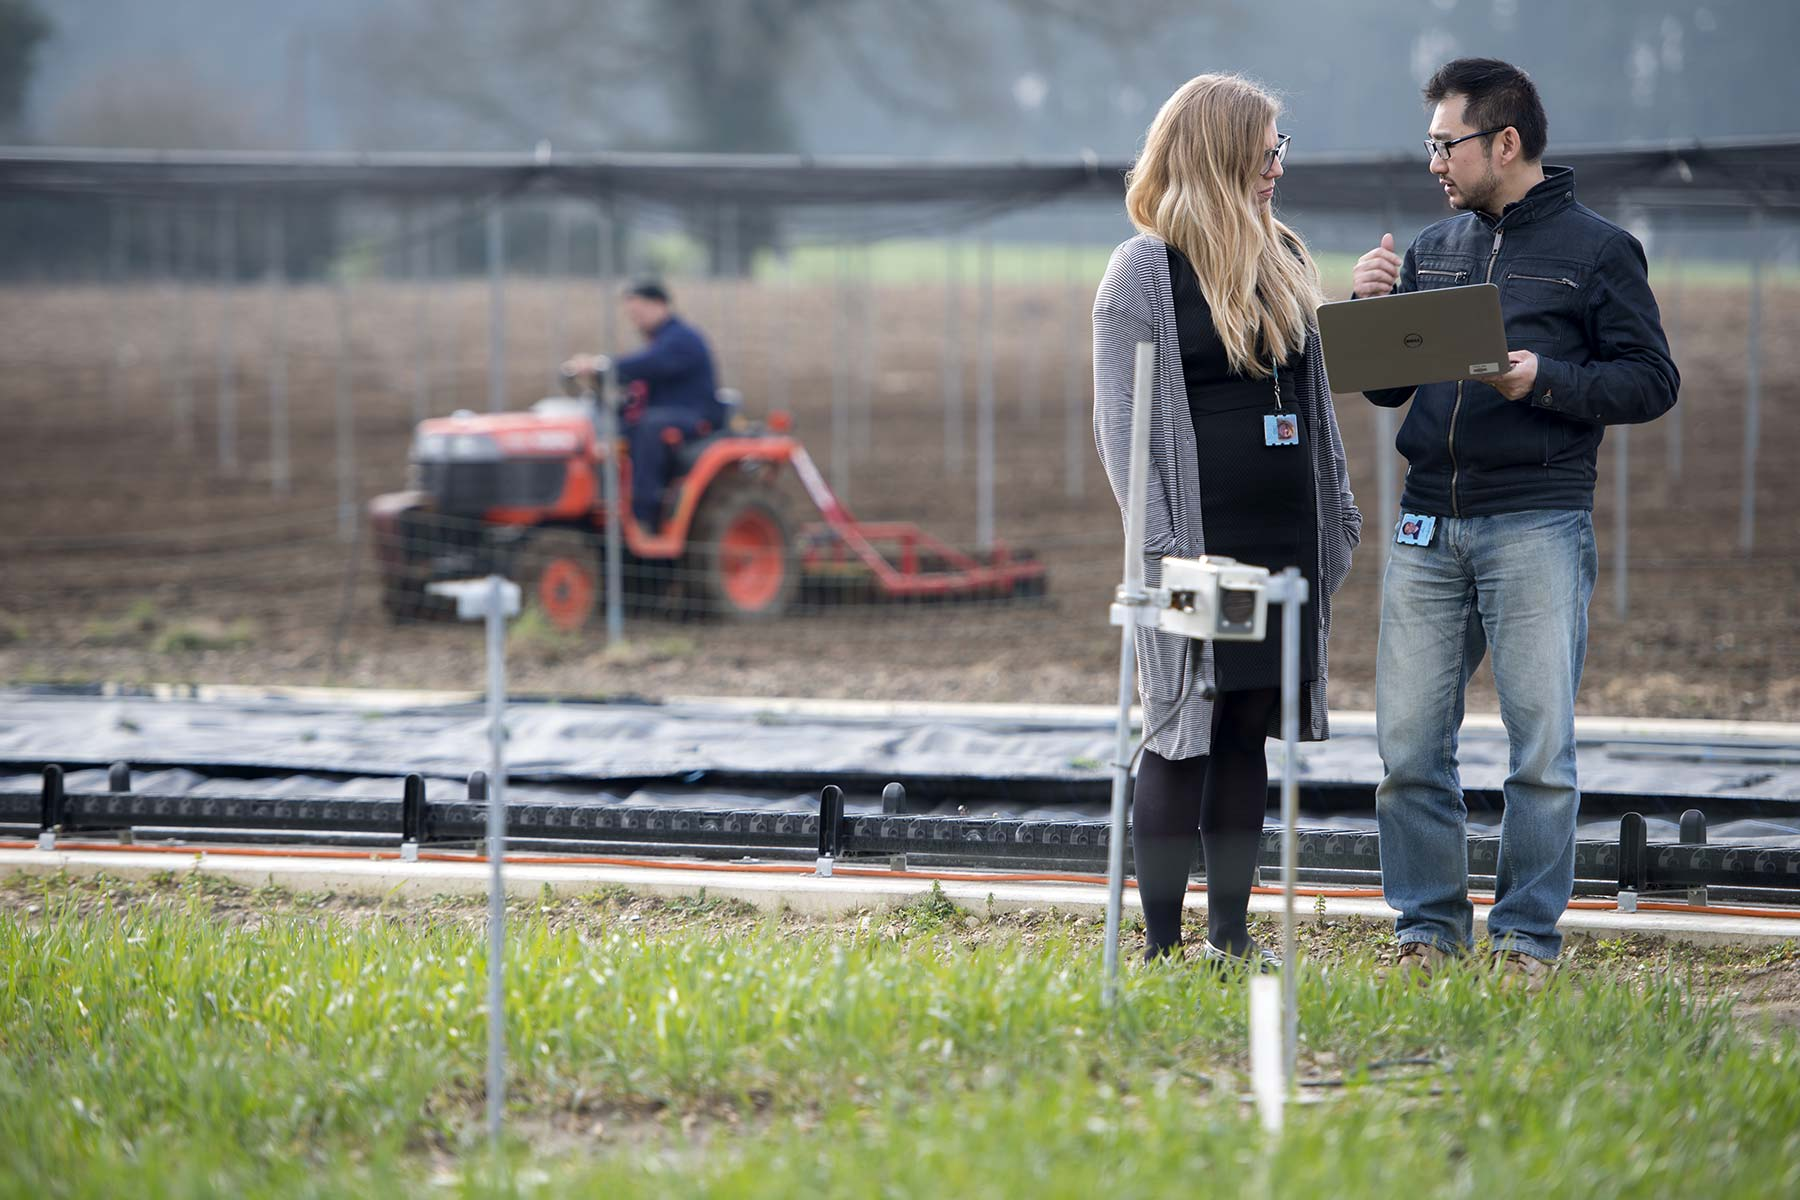 Strike a pose - bringing crop analysis into the 21st Century with automated field phenomics